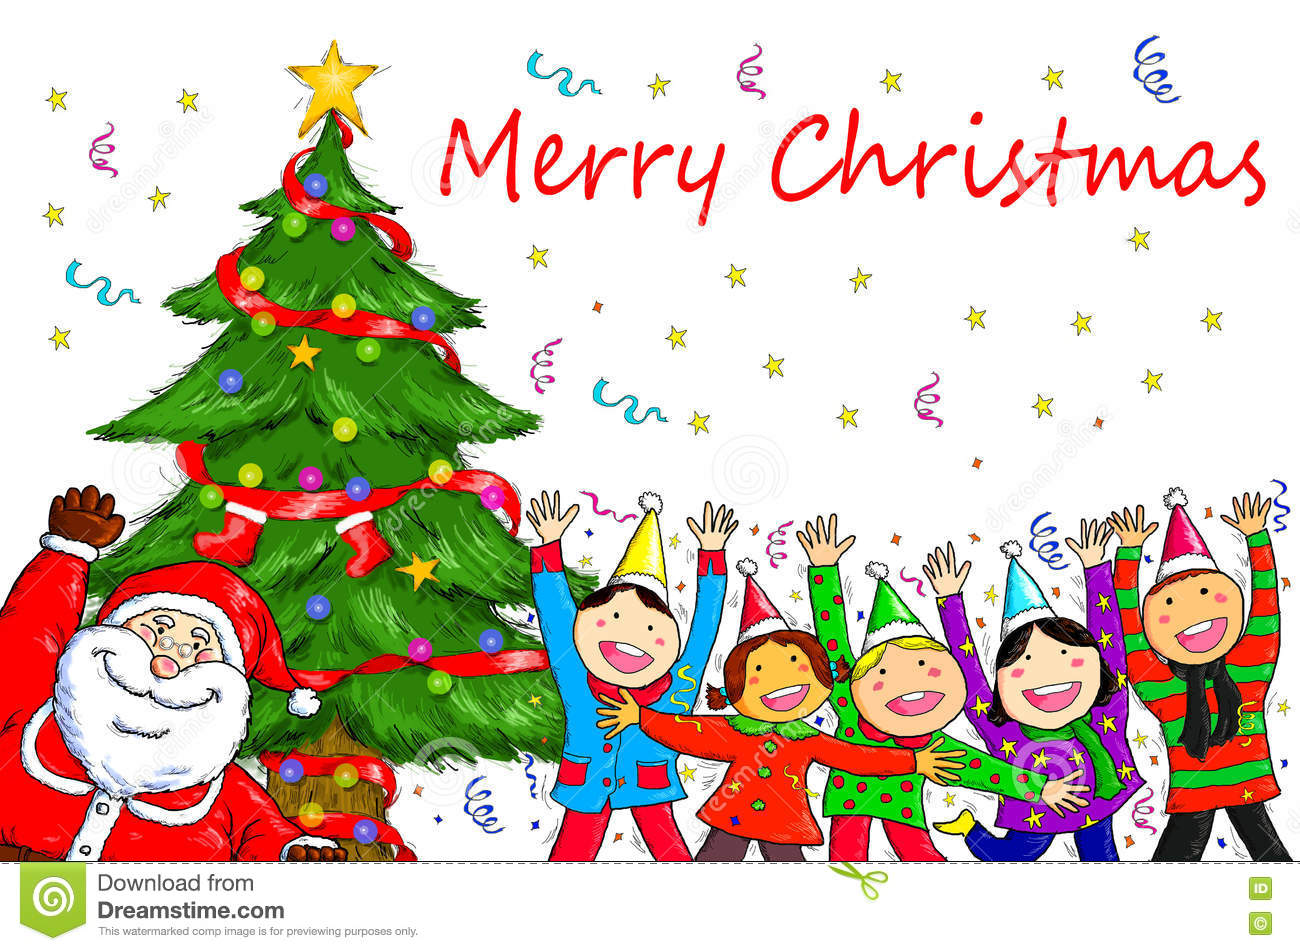 Christmas Drawing Images Easy Drawn Gift Drawing Pencil And In